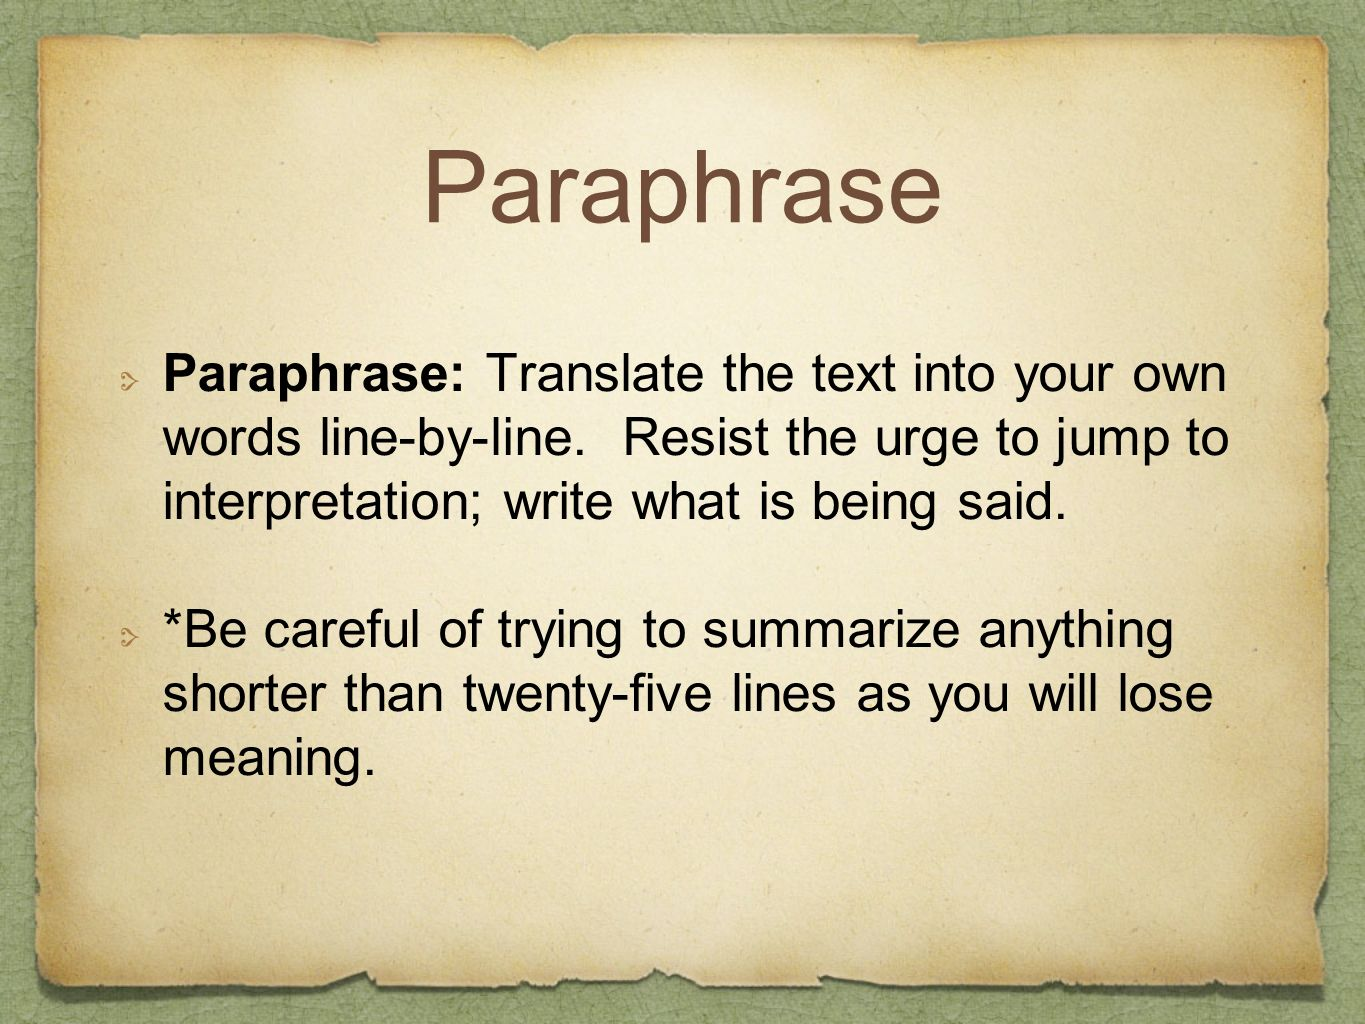 Paraphrase Paraphrase: Translate the text into your own words line-by-line. Resist the urge to jump to interpretation; write what is being said.